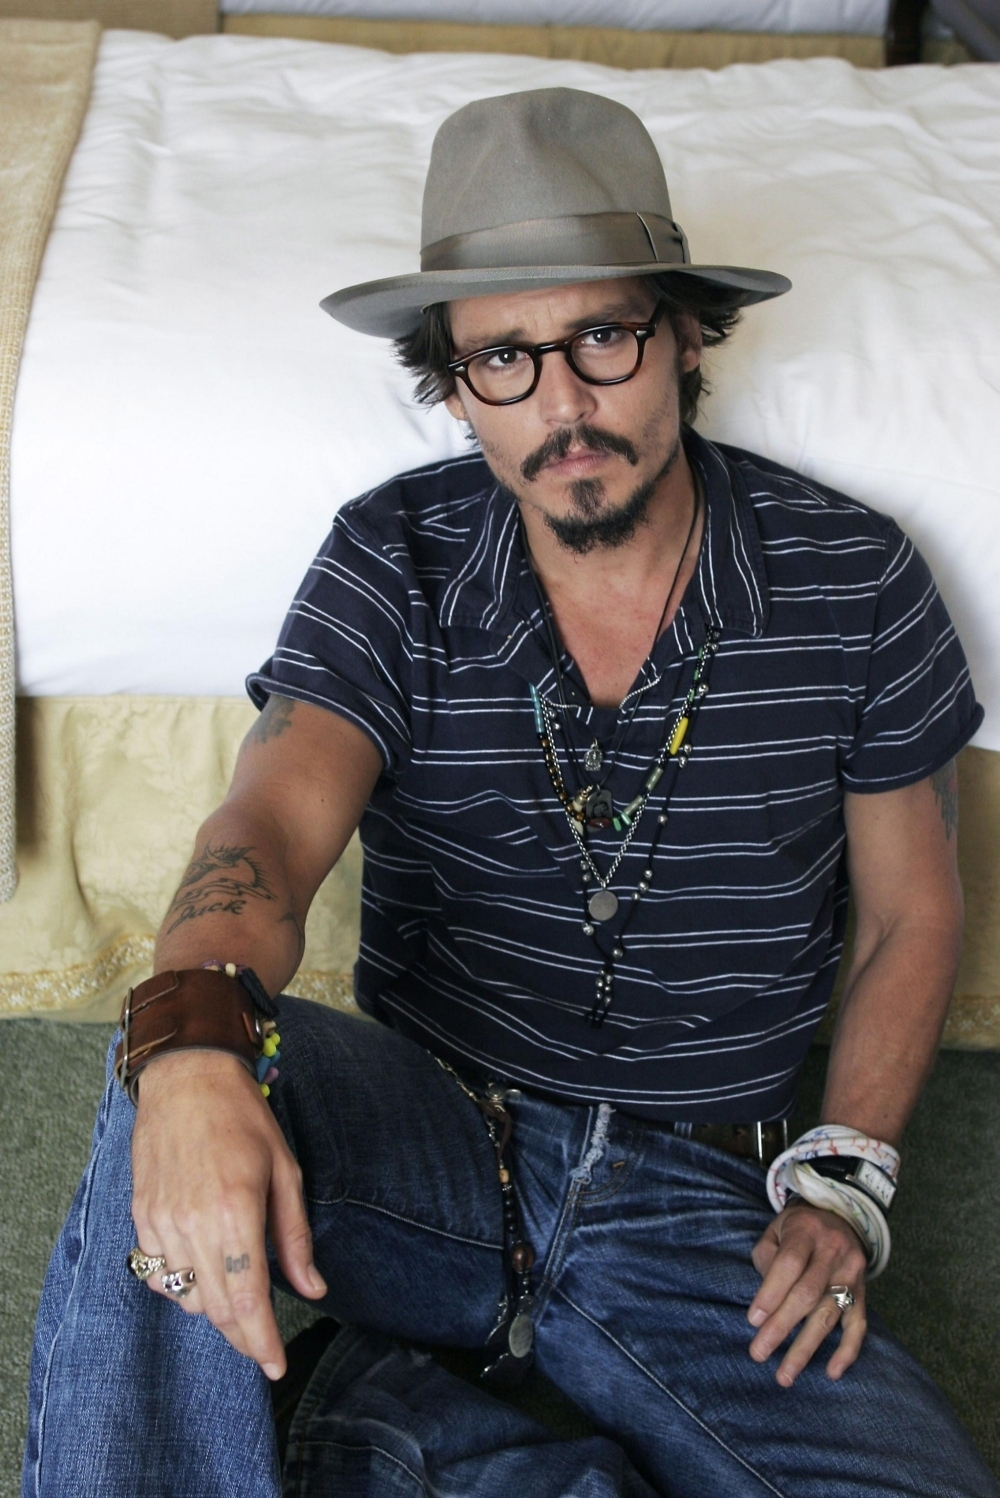 Photoshoot 2005 Johnny Depp Photo 5794966 Fanpop